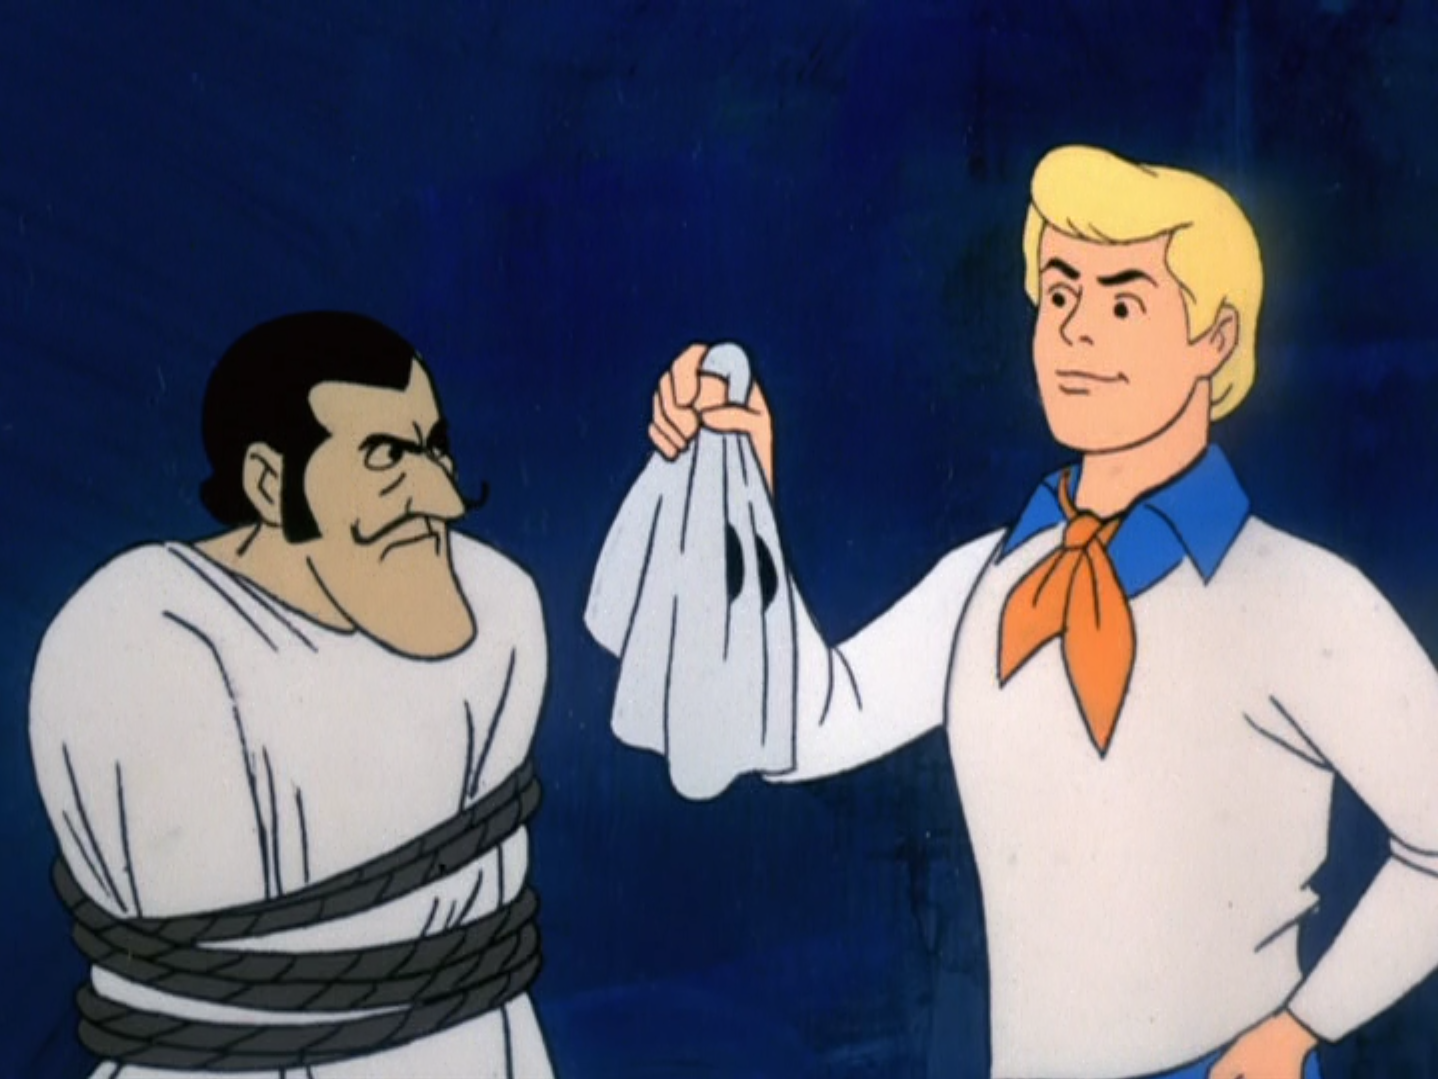 phantom hassle in the castle scoobypedia the scooby